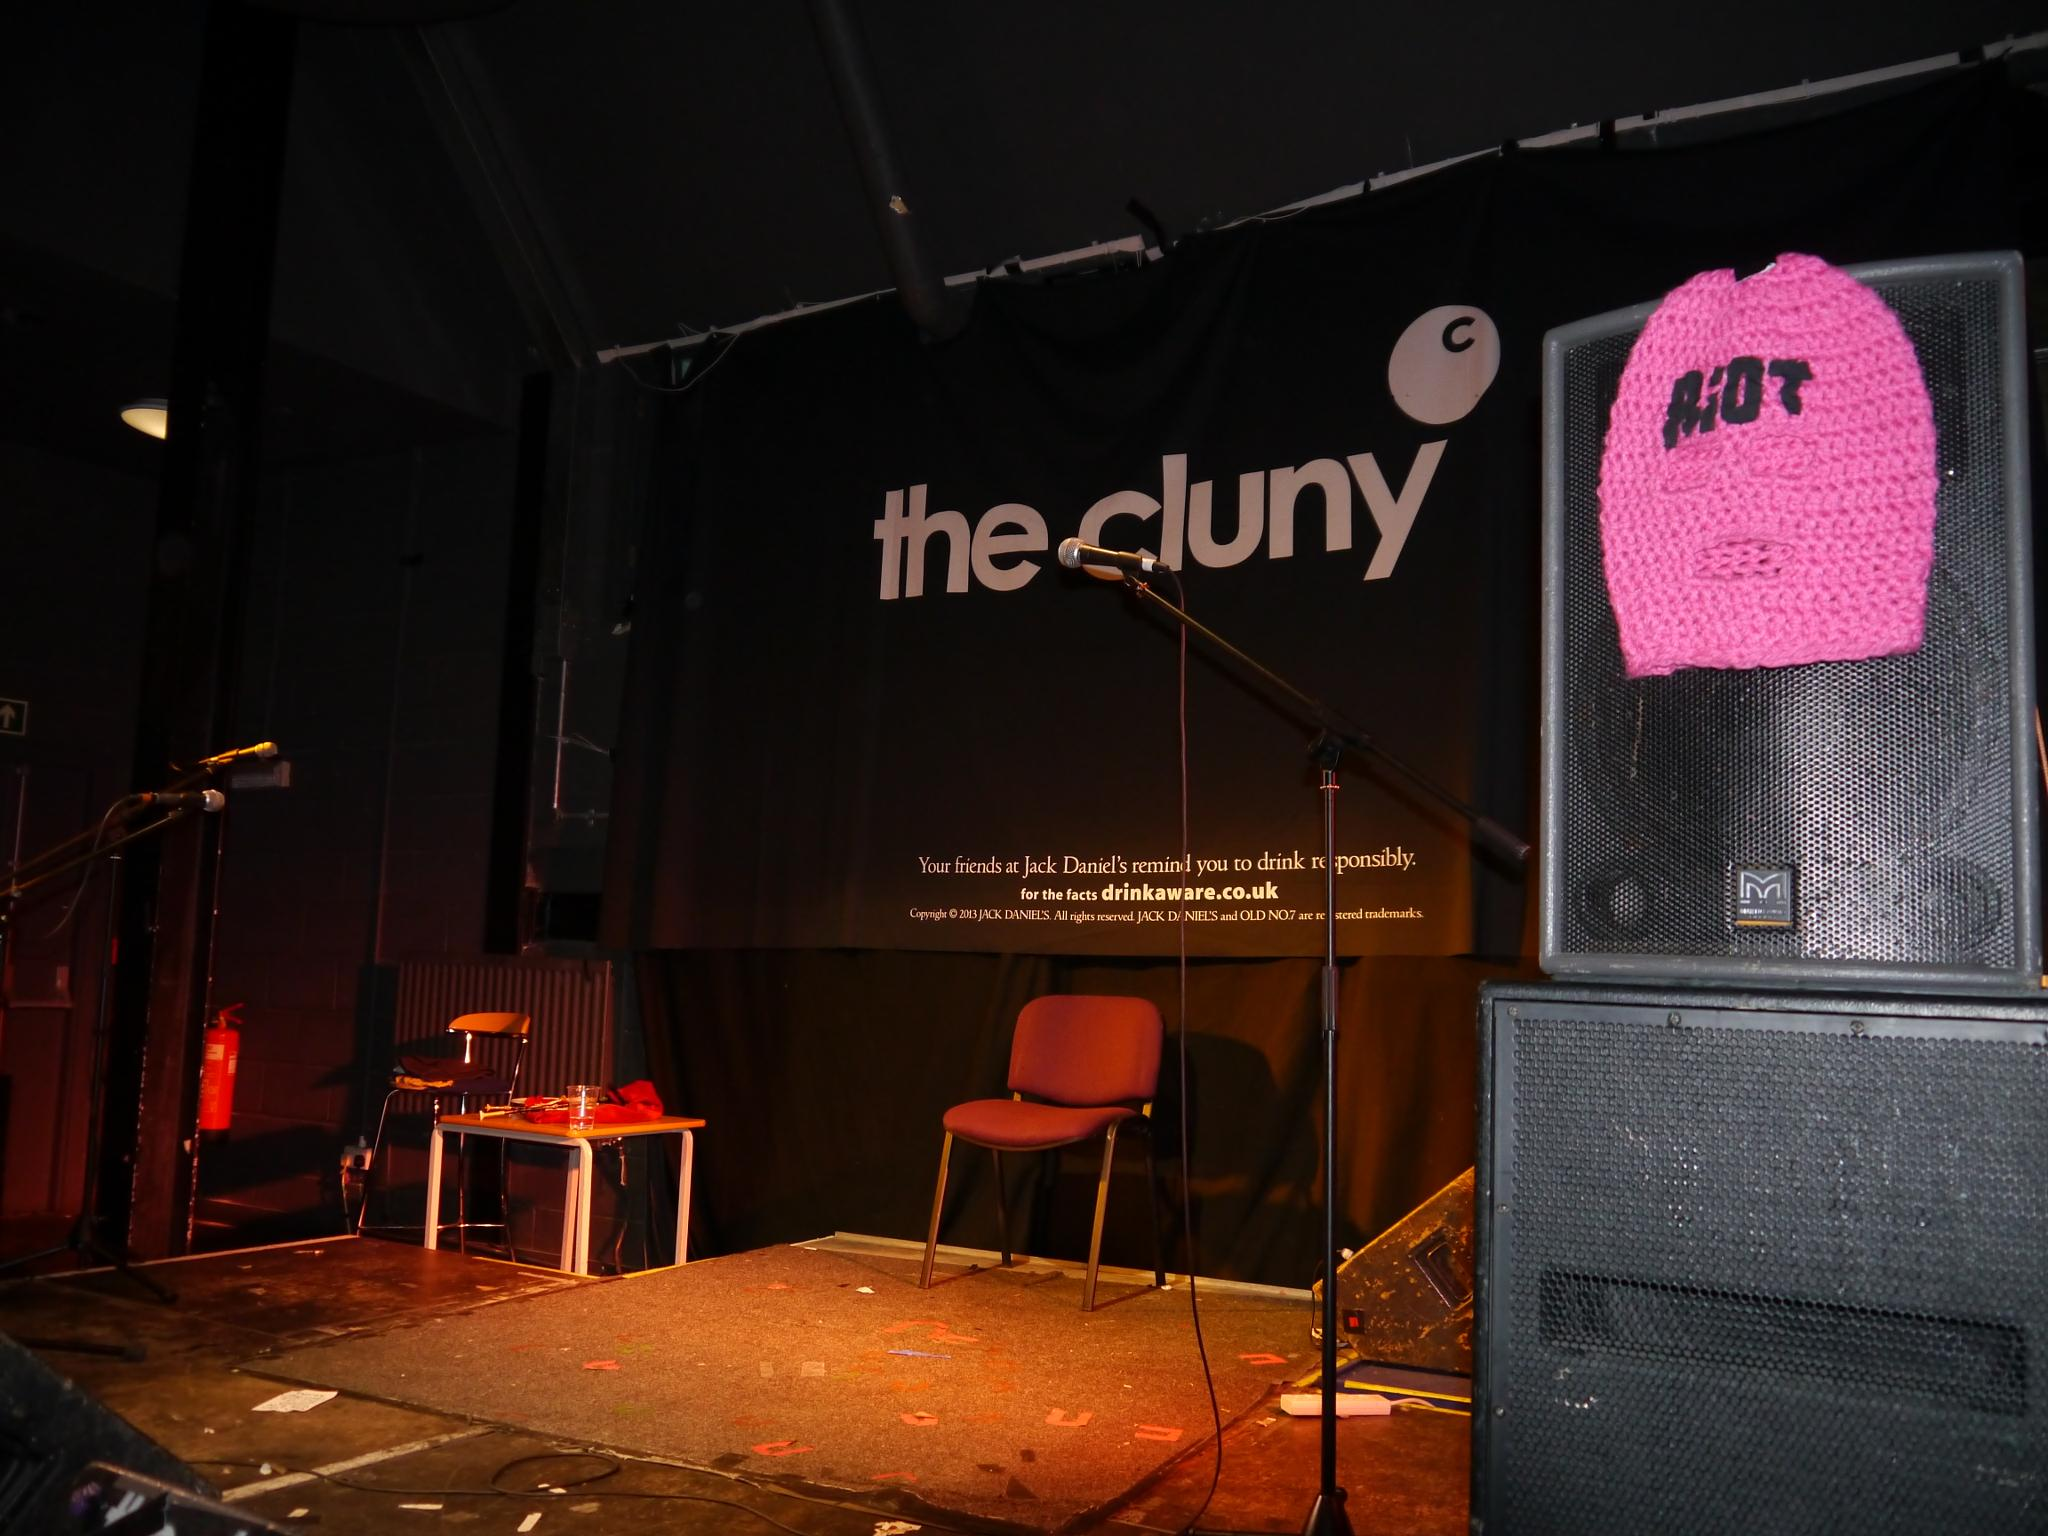 Stage is set for Pipe Riot at the the Cluny Newcastle last night. by Darren Turner